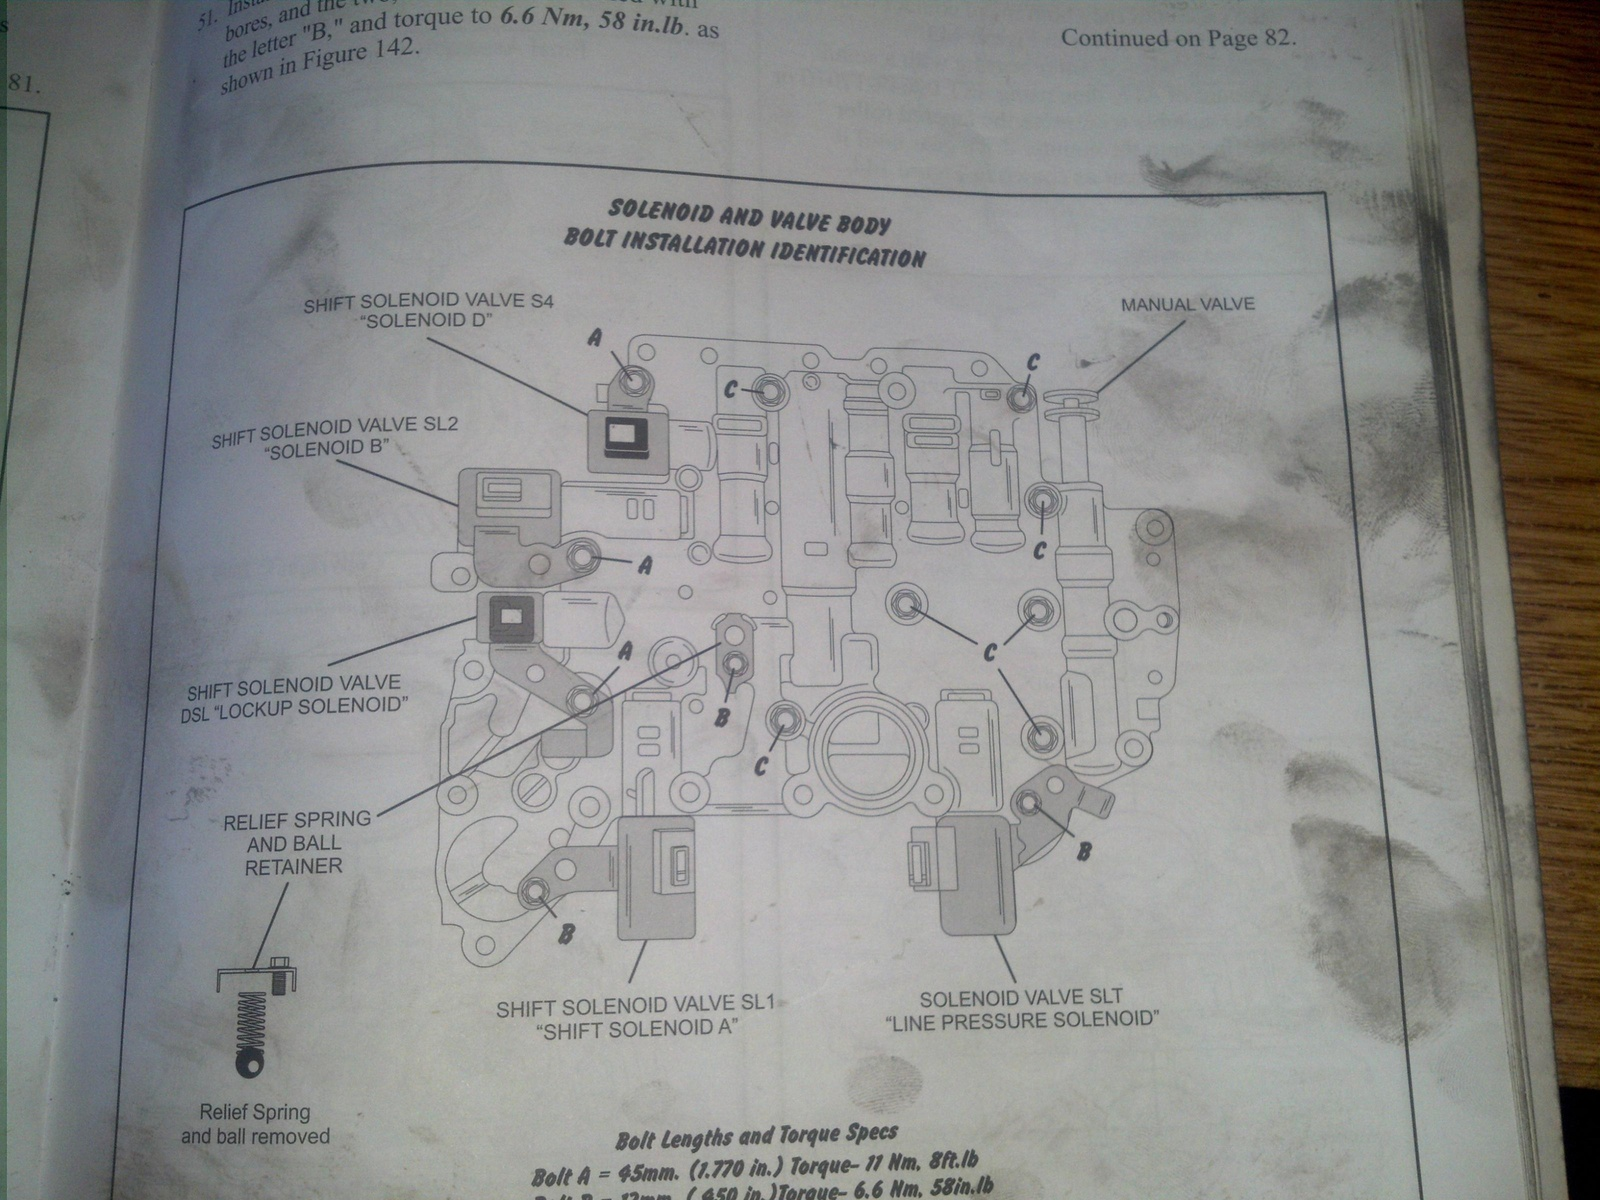 lexus rx300 engine bay wiring diagram wiring library Chrysler Crossfire Wiring Diagram 10 people found this helpful lexus rx